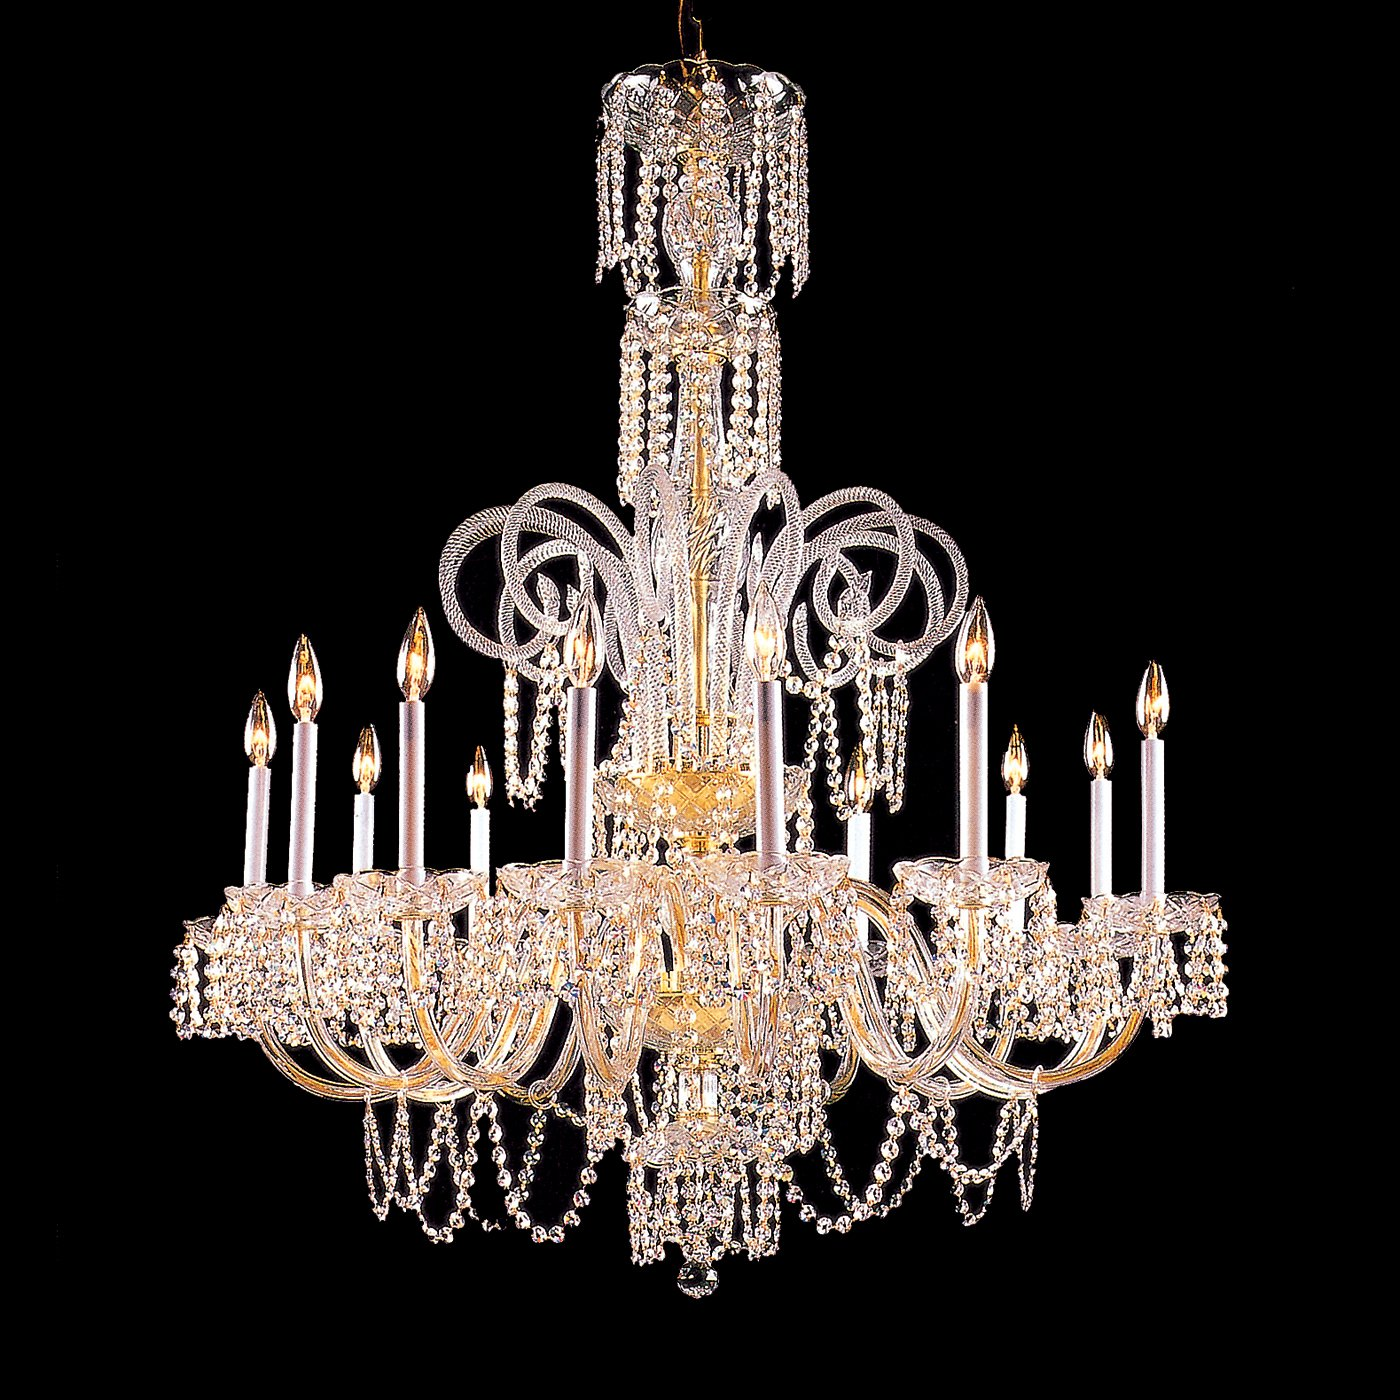 Chandelier on pinterest crystal chandeliers chandeliers and murano glass - Crystal chandelier for dining room ...